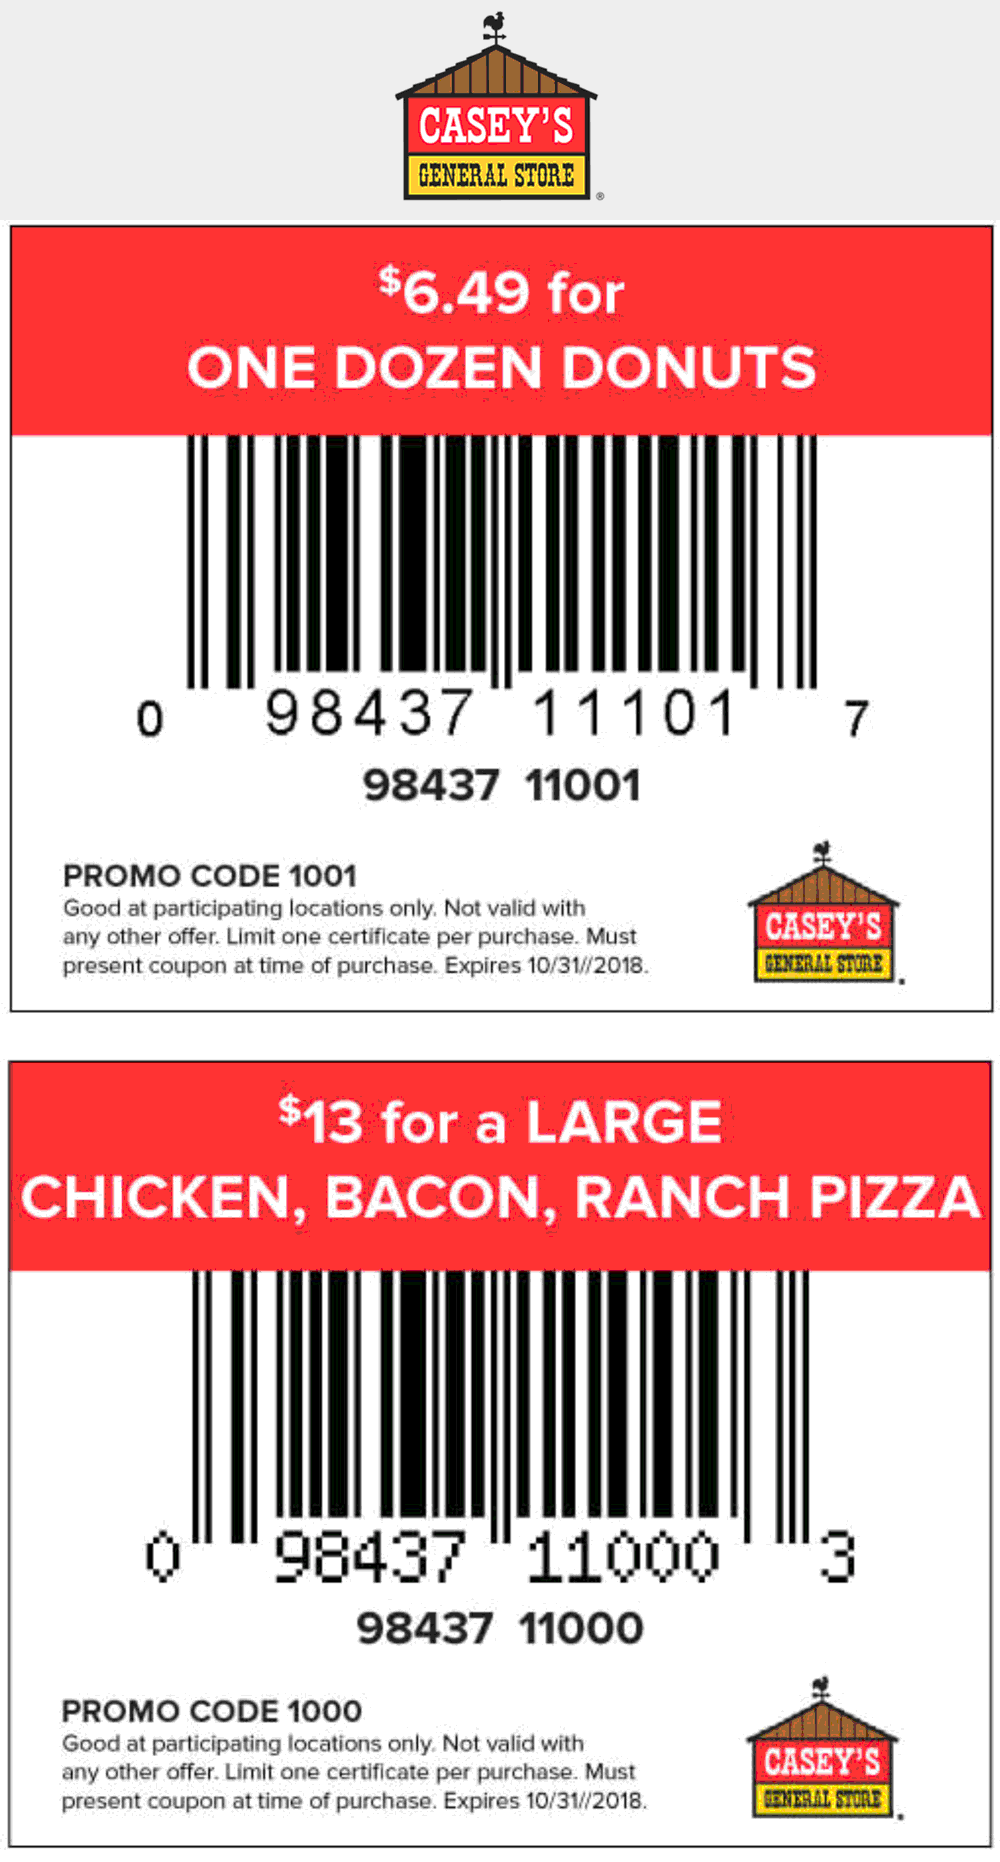 Caseys General Store Coupon July 2019 Discounted pizza & donuts at Caseys General Store